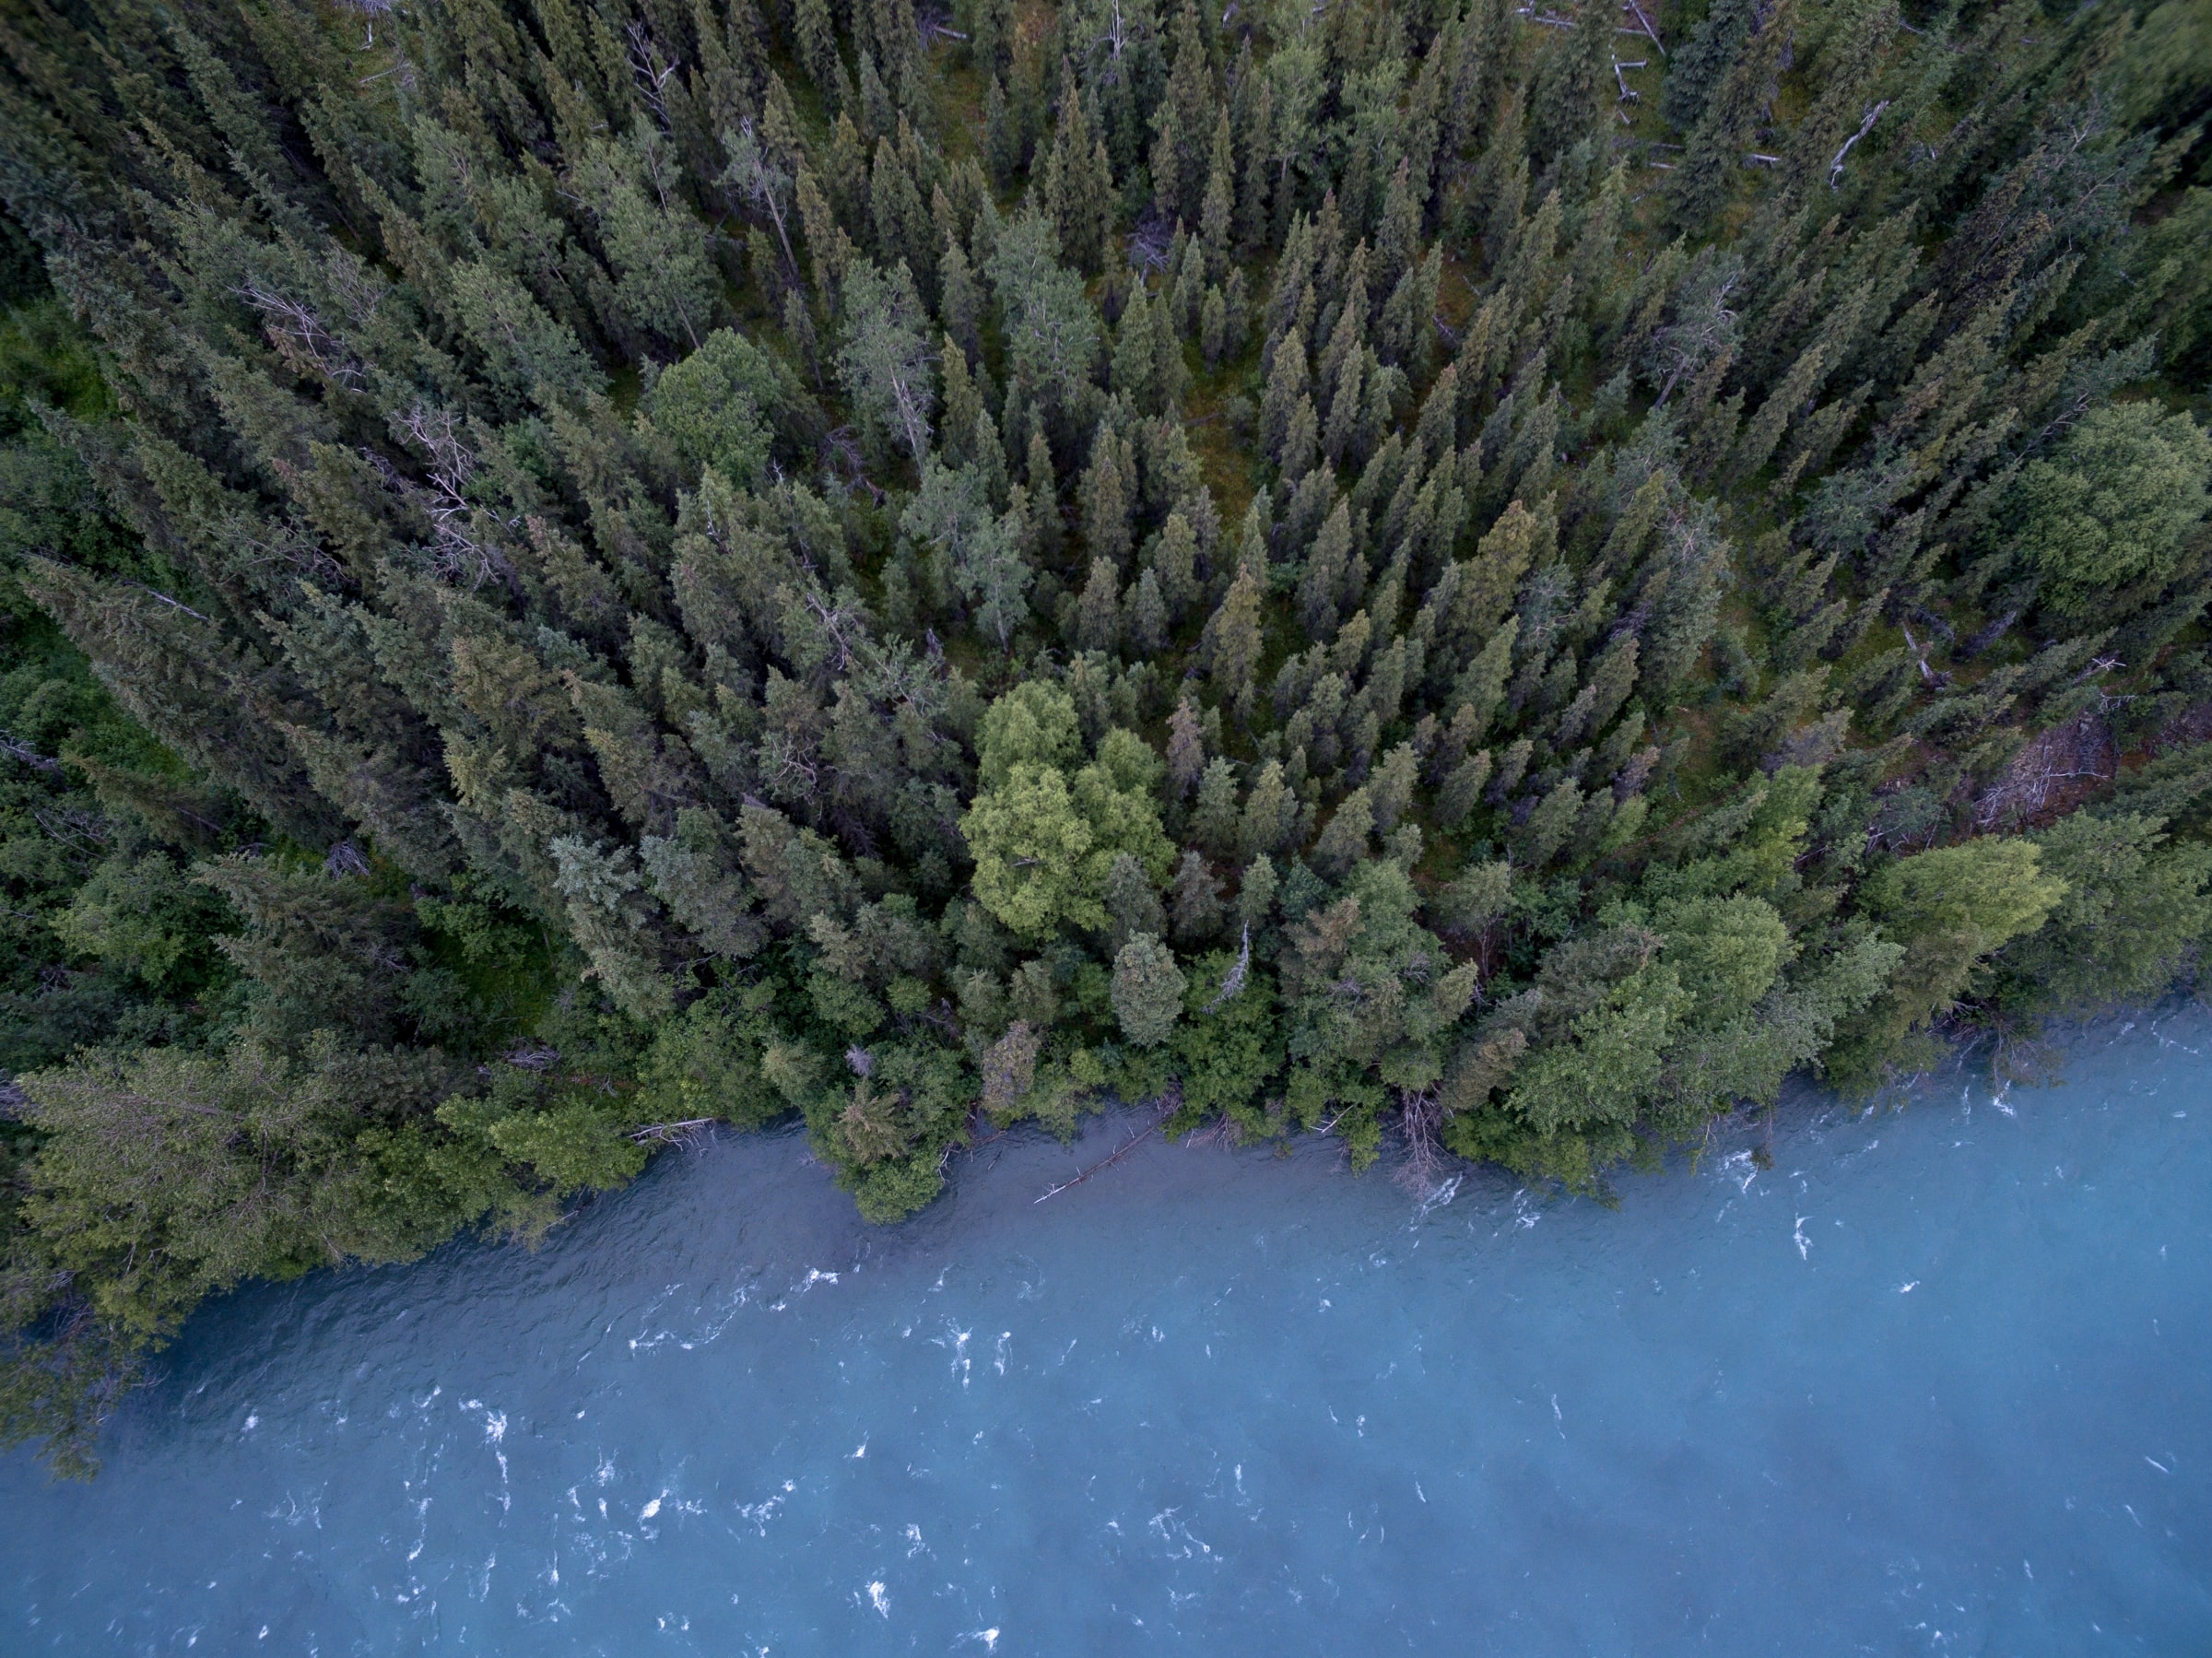 A drone shot of an evergreen forest on the shore of a blue lake